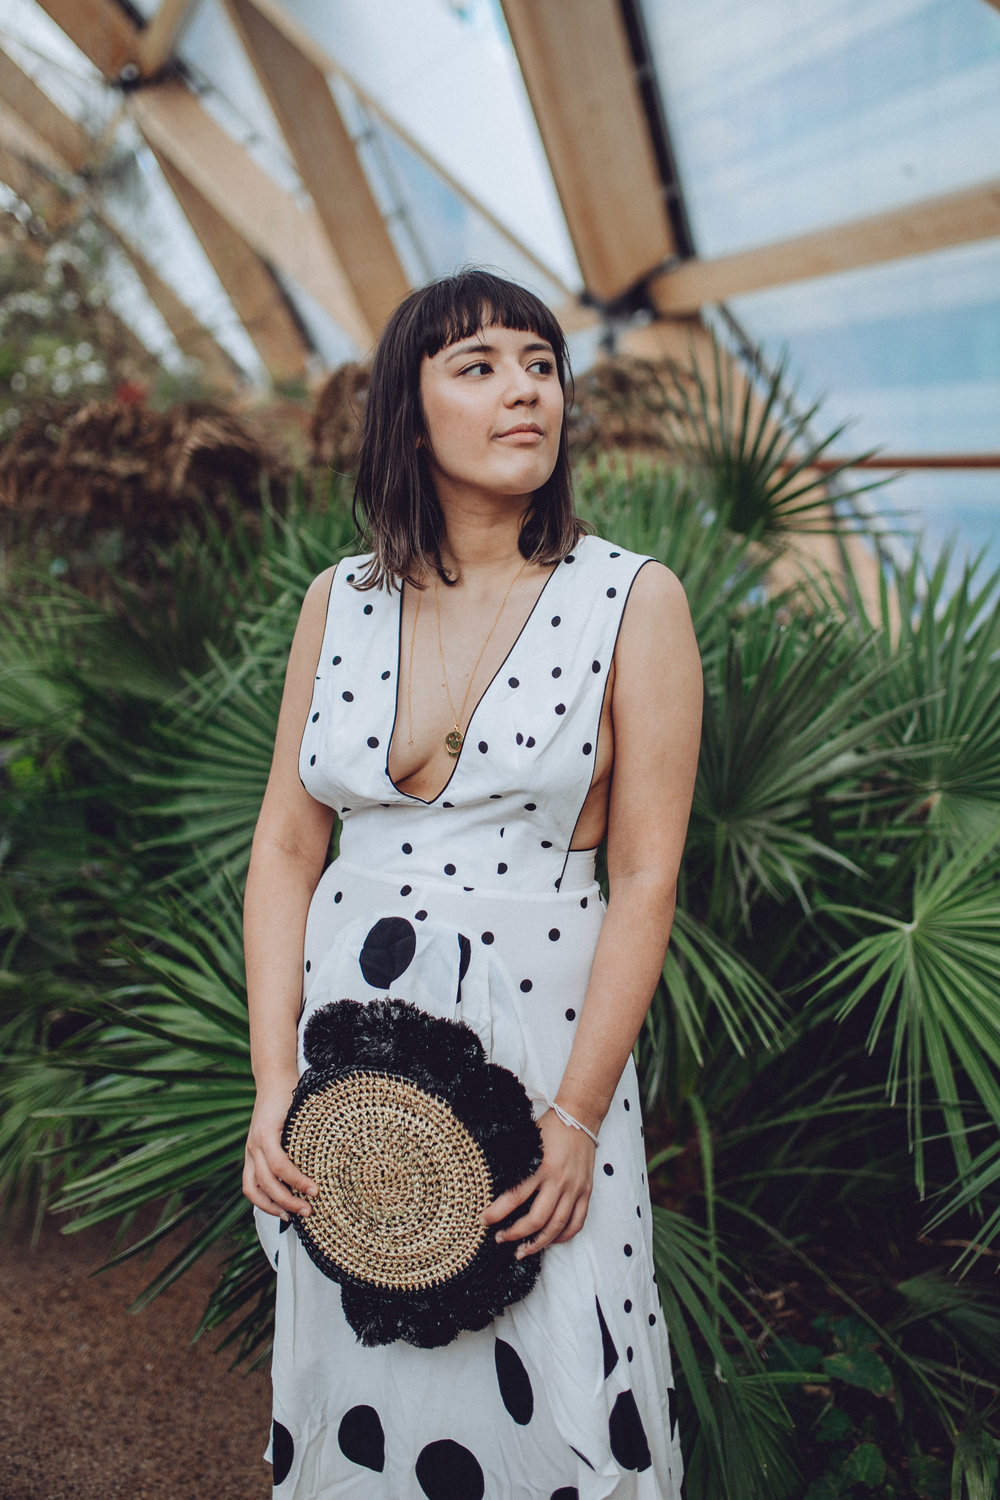 Read My Last Post - I bought that infamous £200 Topshop polka dot dress. (I regret it.) A.K.A. My conspiracy theory about why some clothes go cult and others don't.